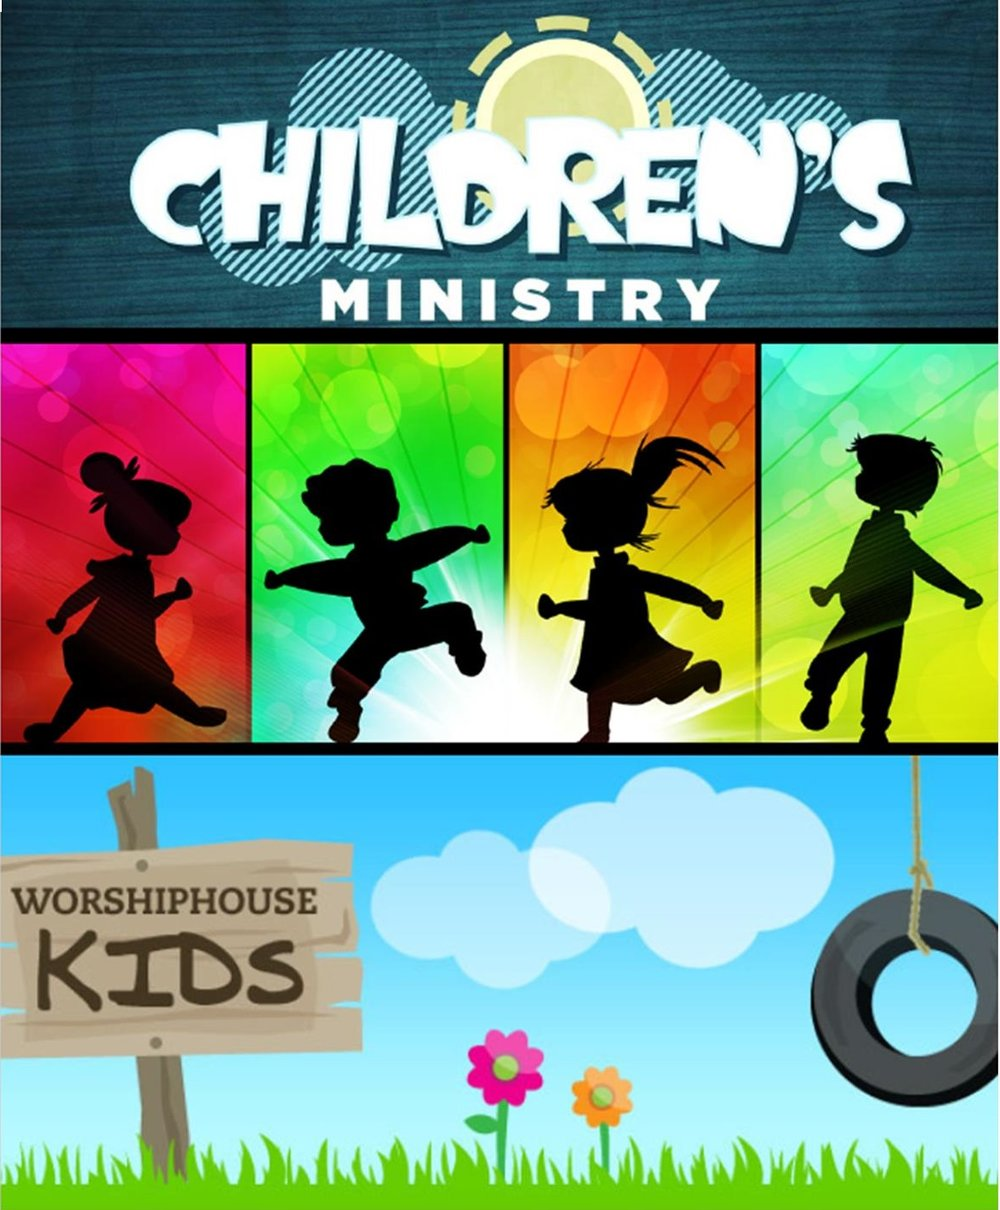 Childrens Ministry Poster downtown.jpg